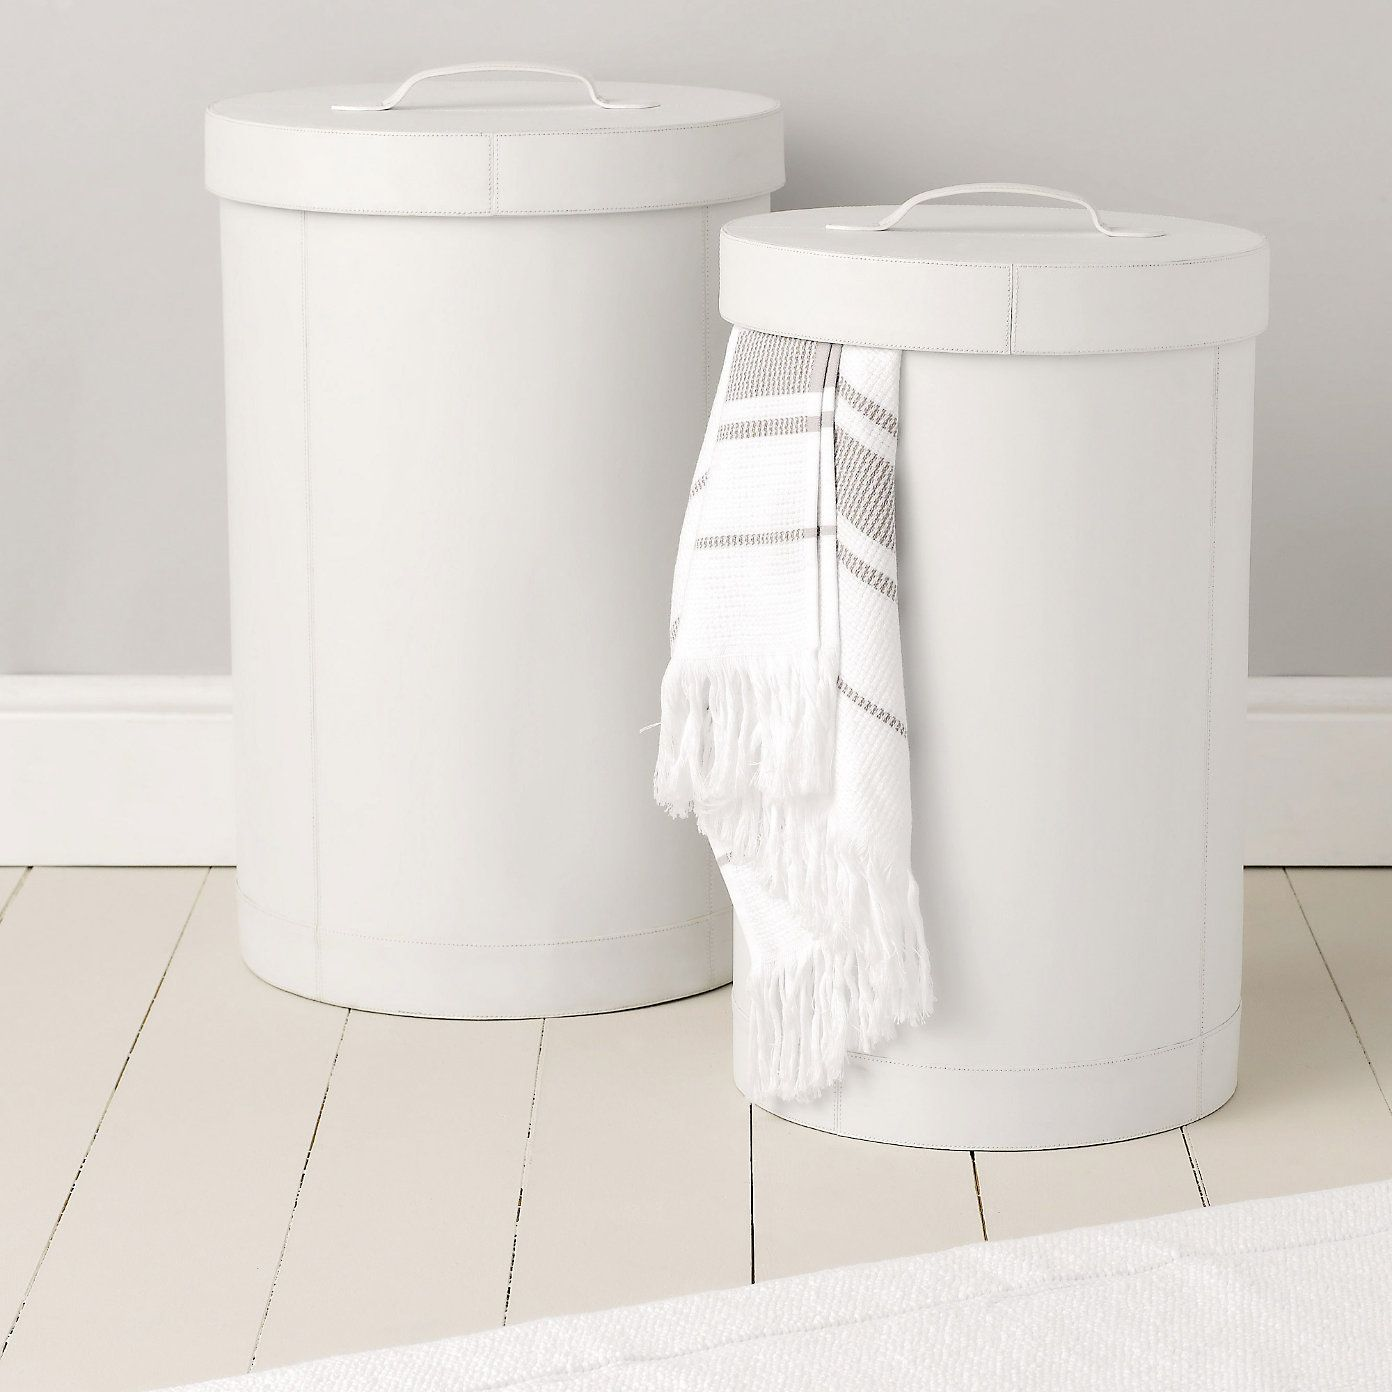 Leather Laundry Bins Bathroom Accessories The White Company Decor House Pinterest